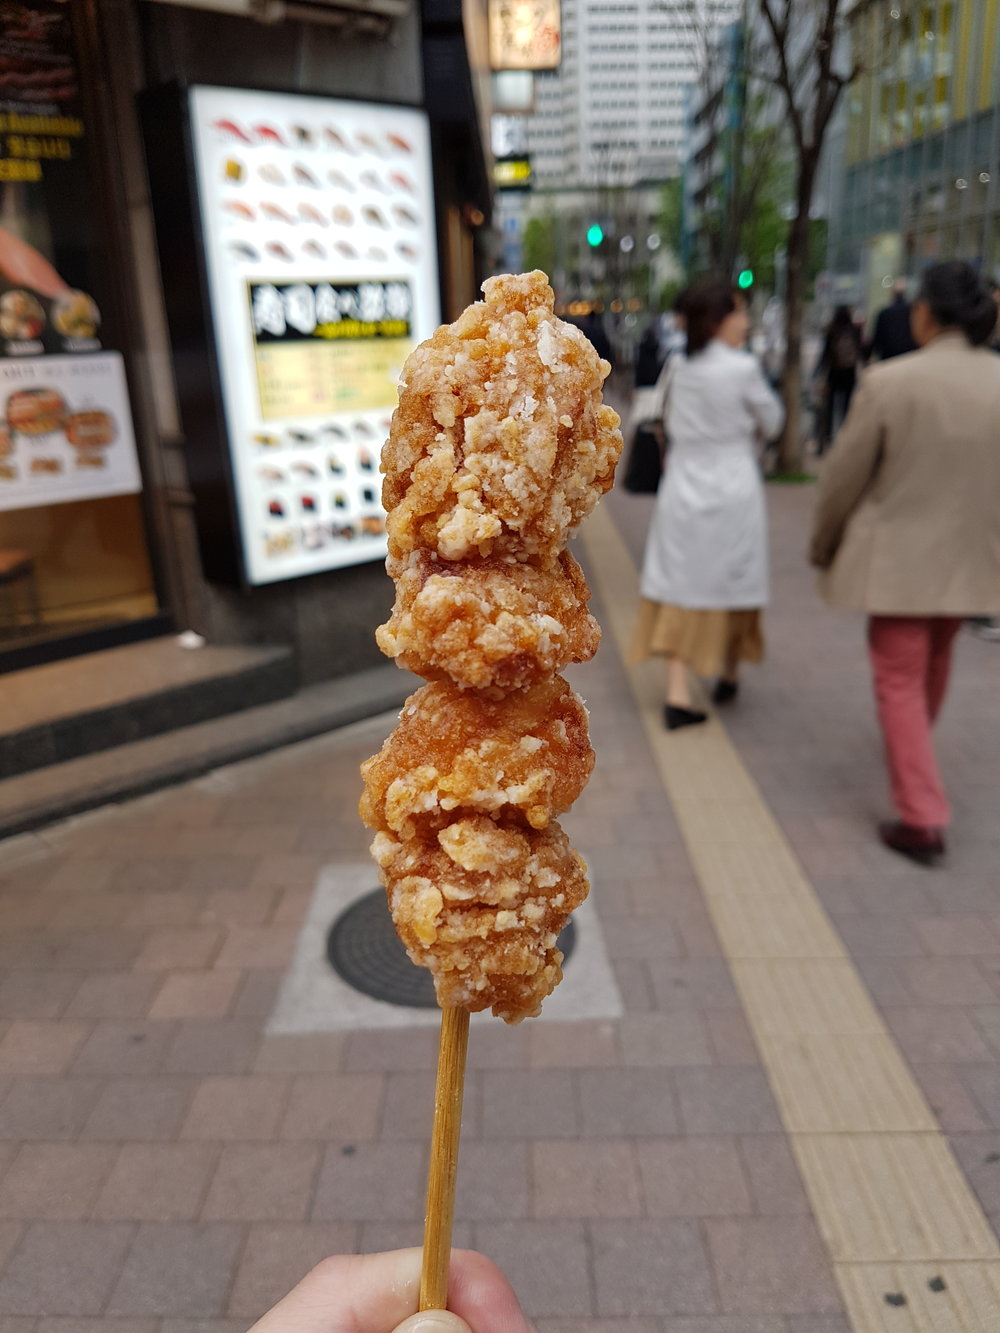 7-11 and their awesome chicken karaage!